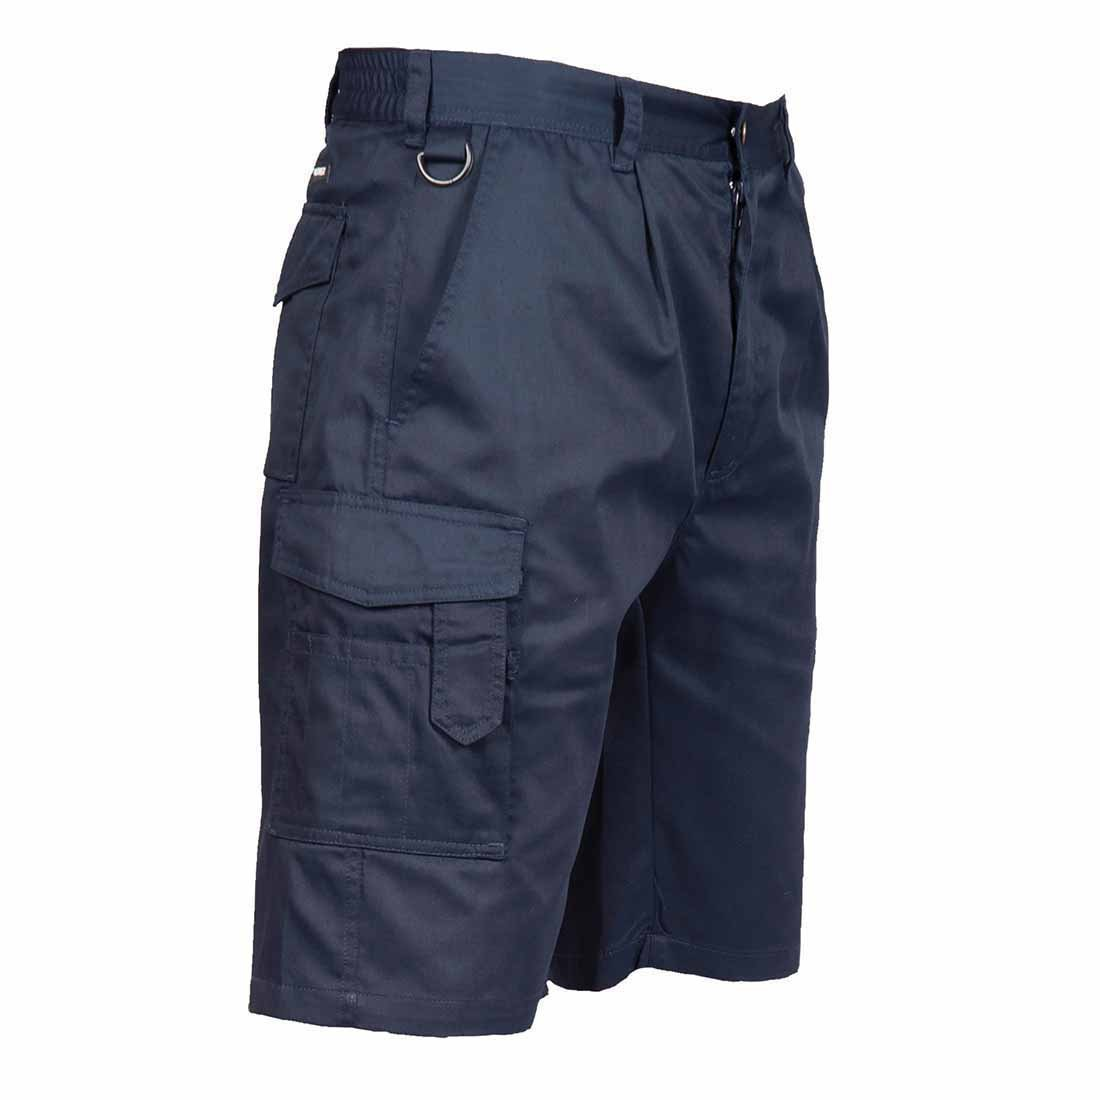 Portwest Work Combat shorts Navy by S790